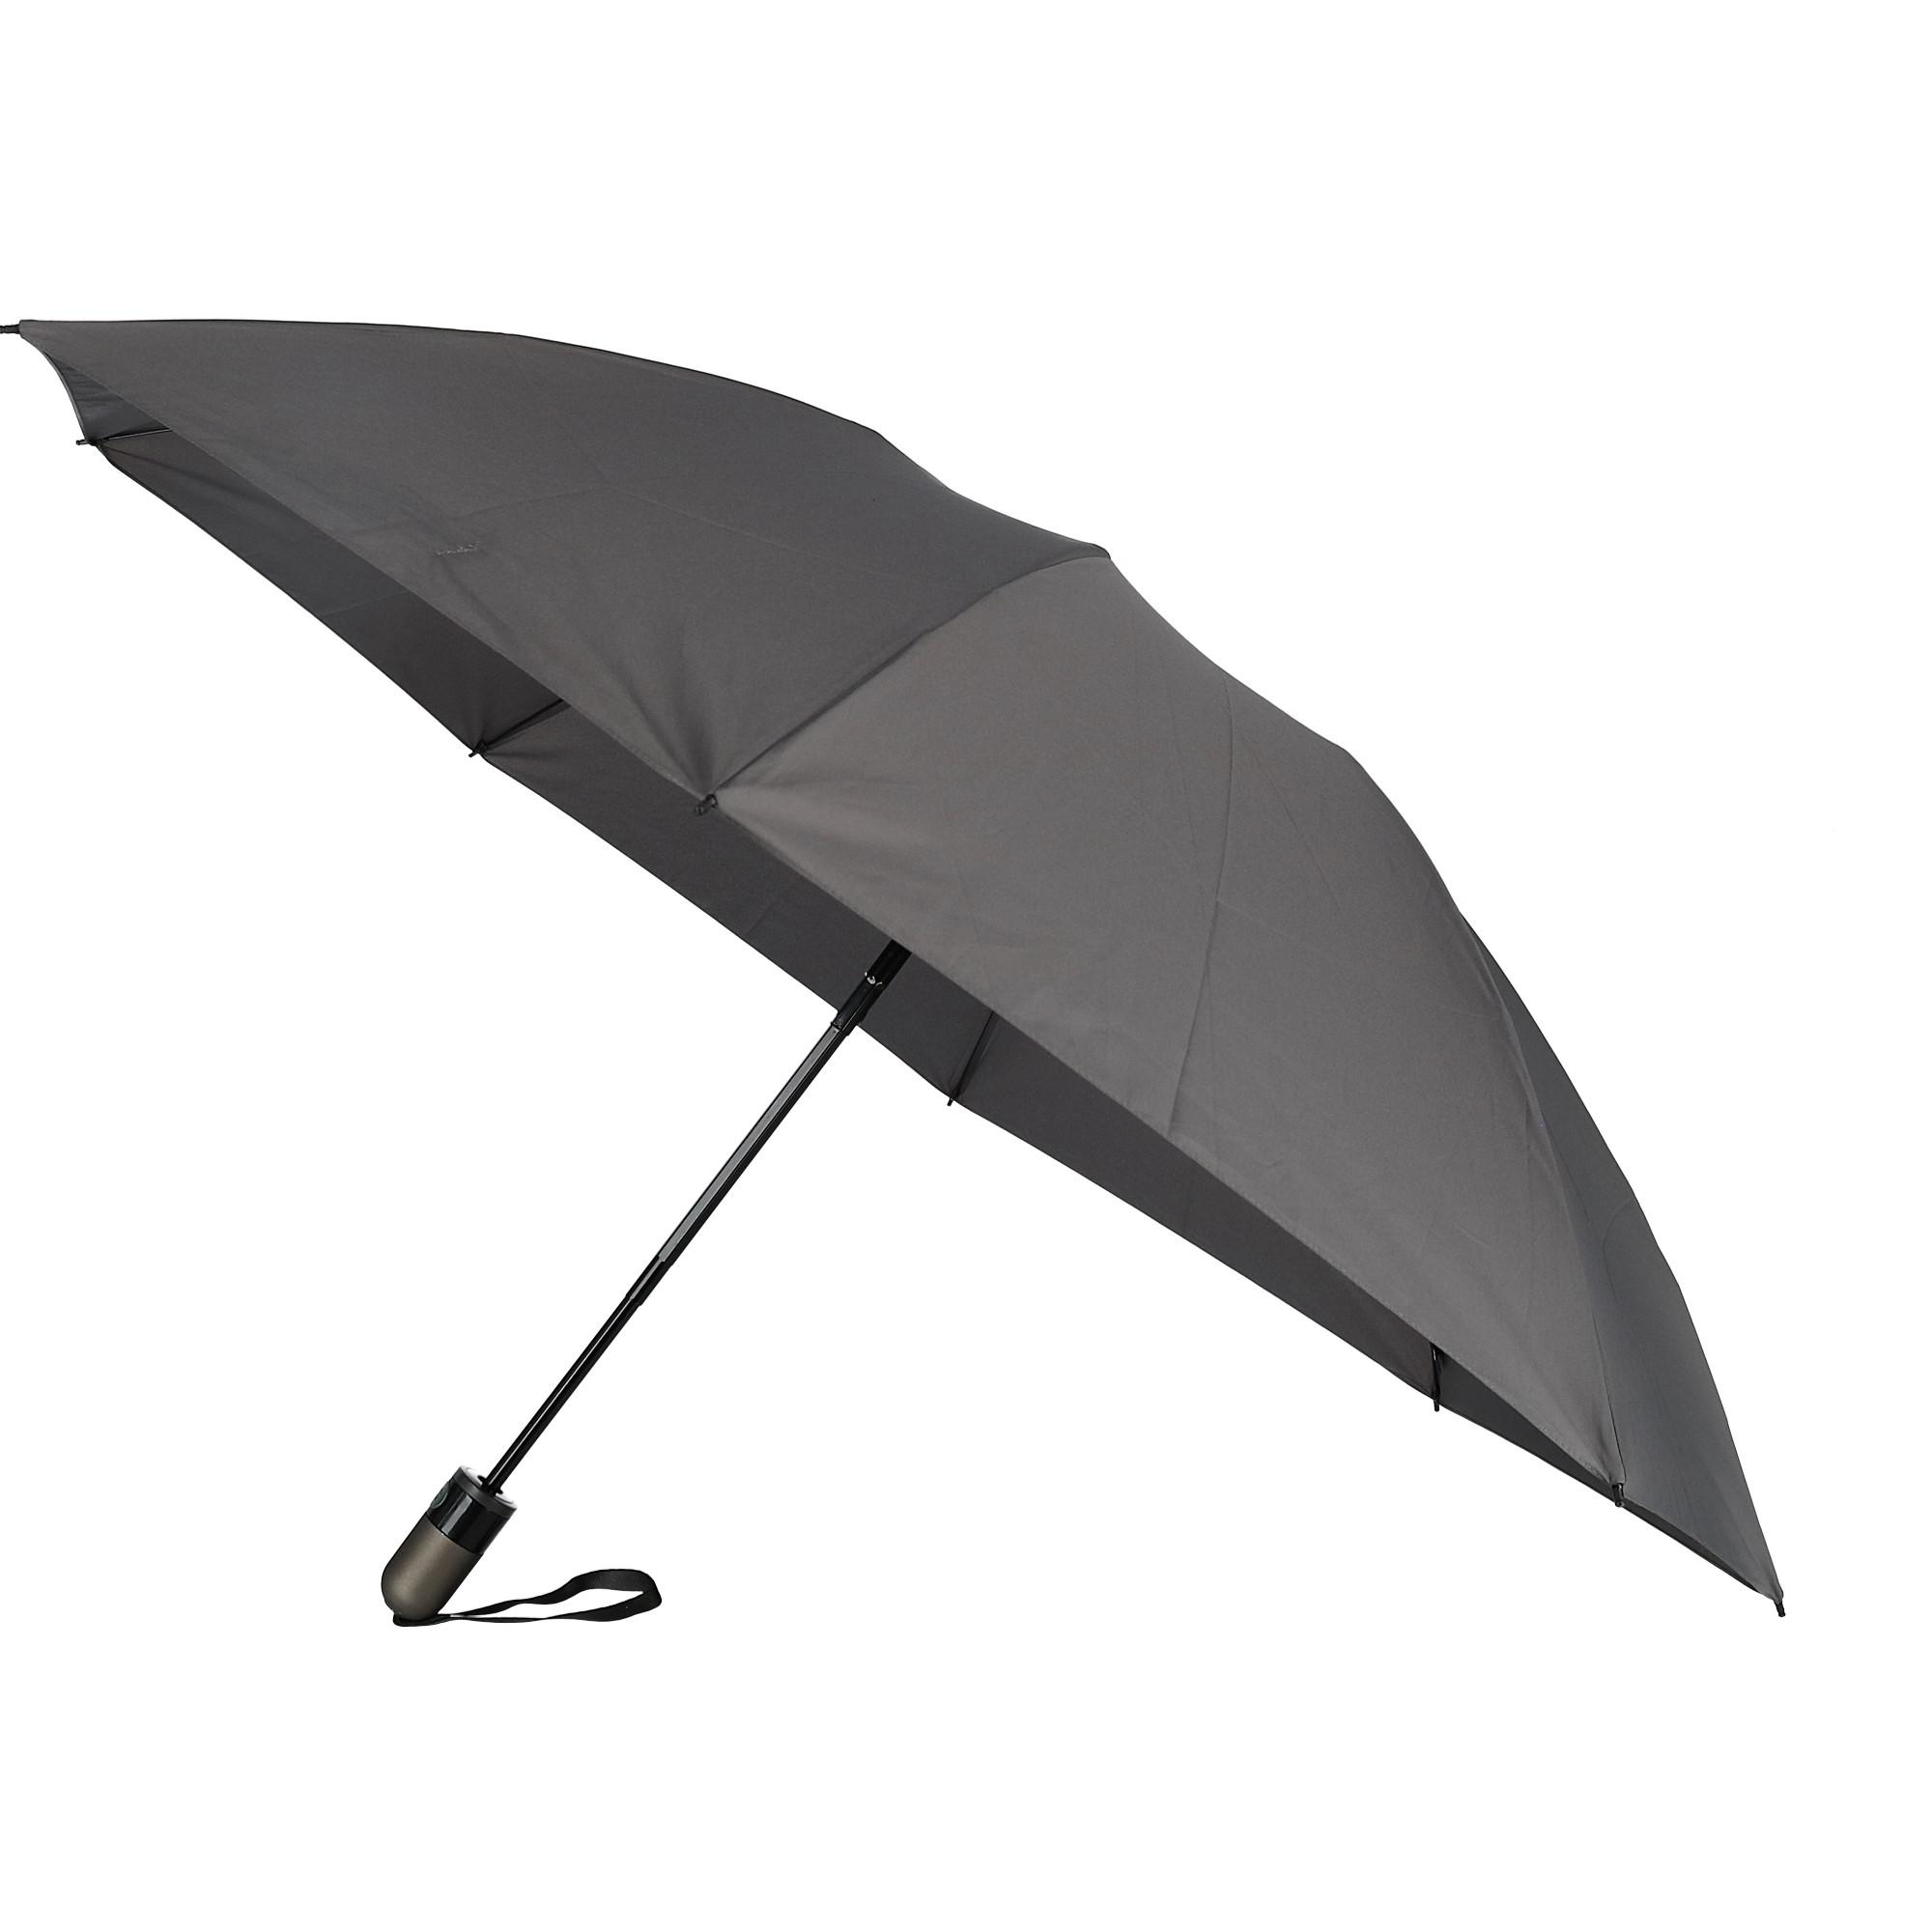 Compact Travel Umbrella Walmart Shedrain Auto Open And Reverse Closing Compact